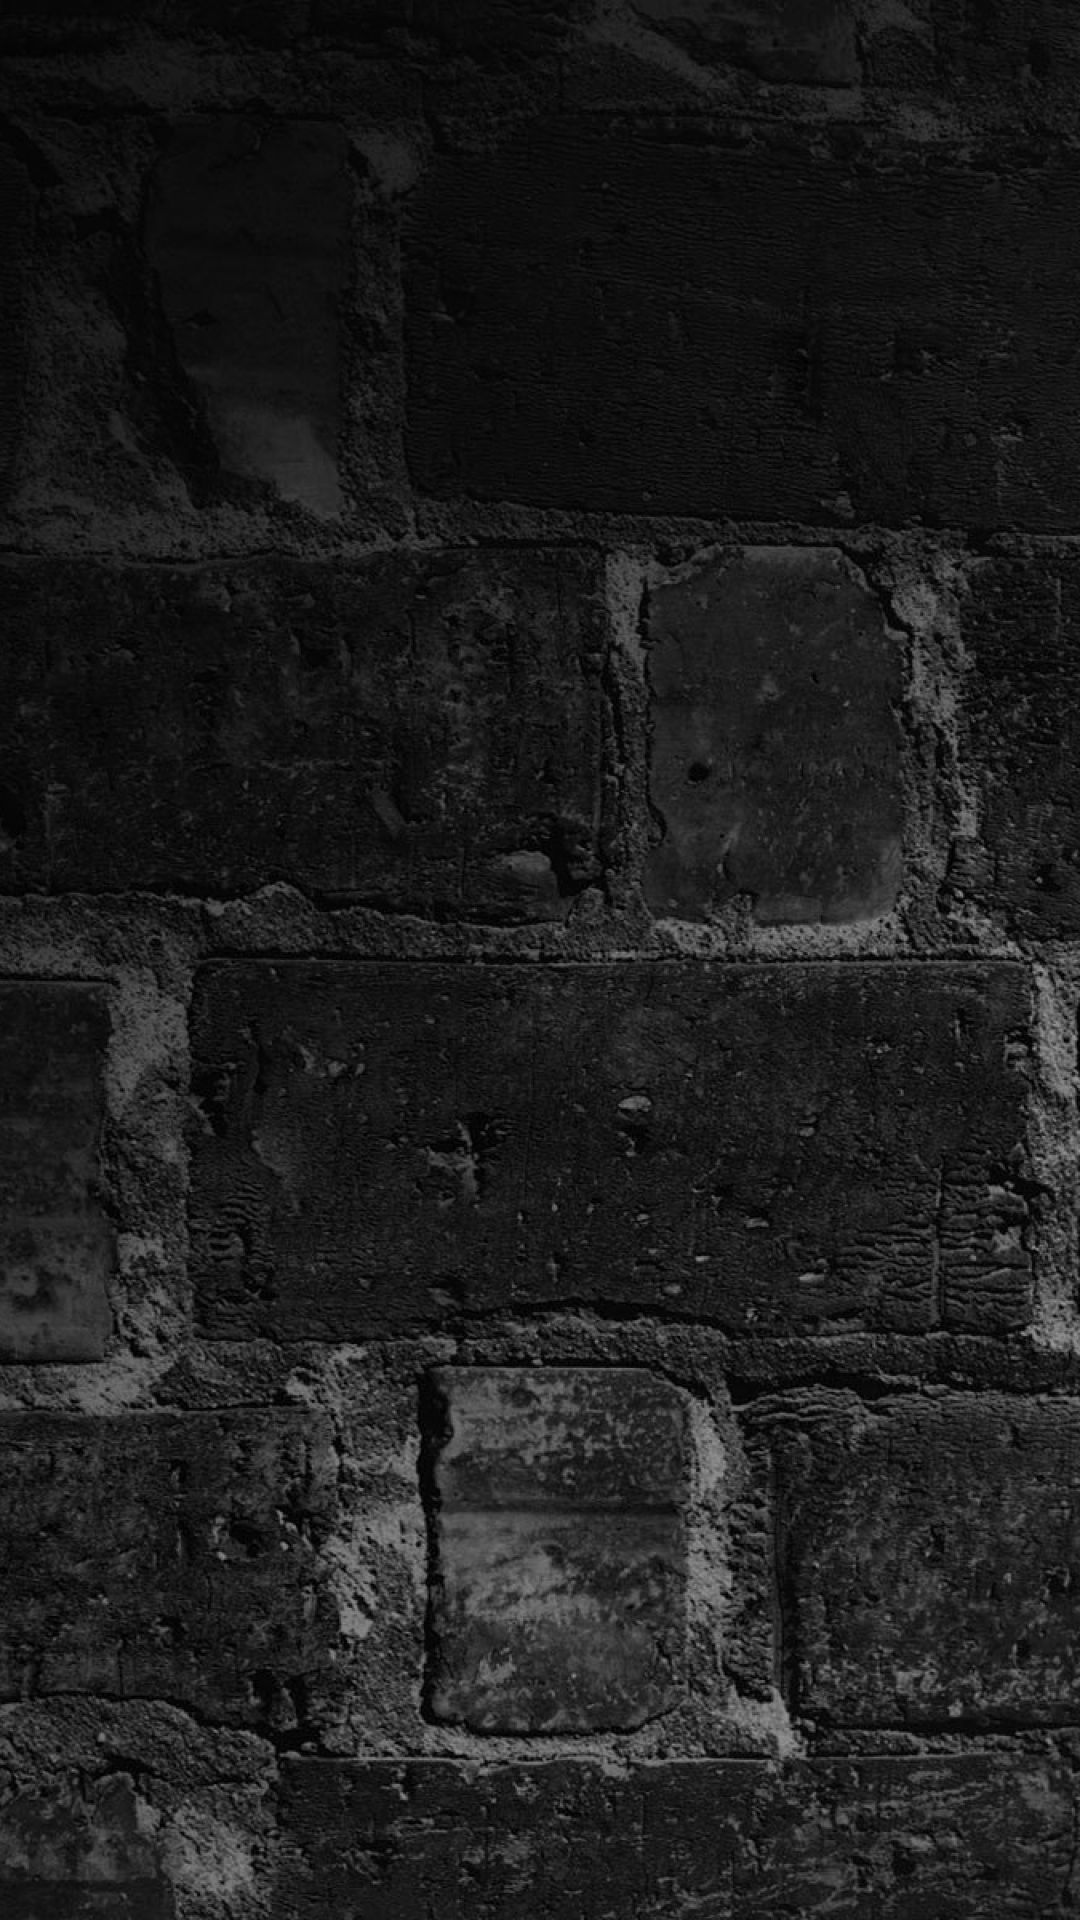 Brick Wallpapers High Definition Hupages Download Iphone Wallpapers Black Wallpaper Iphone Dark Black Wallpaper Iphone Black Wallpaper